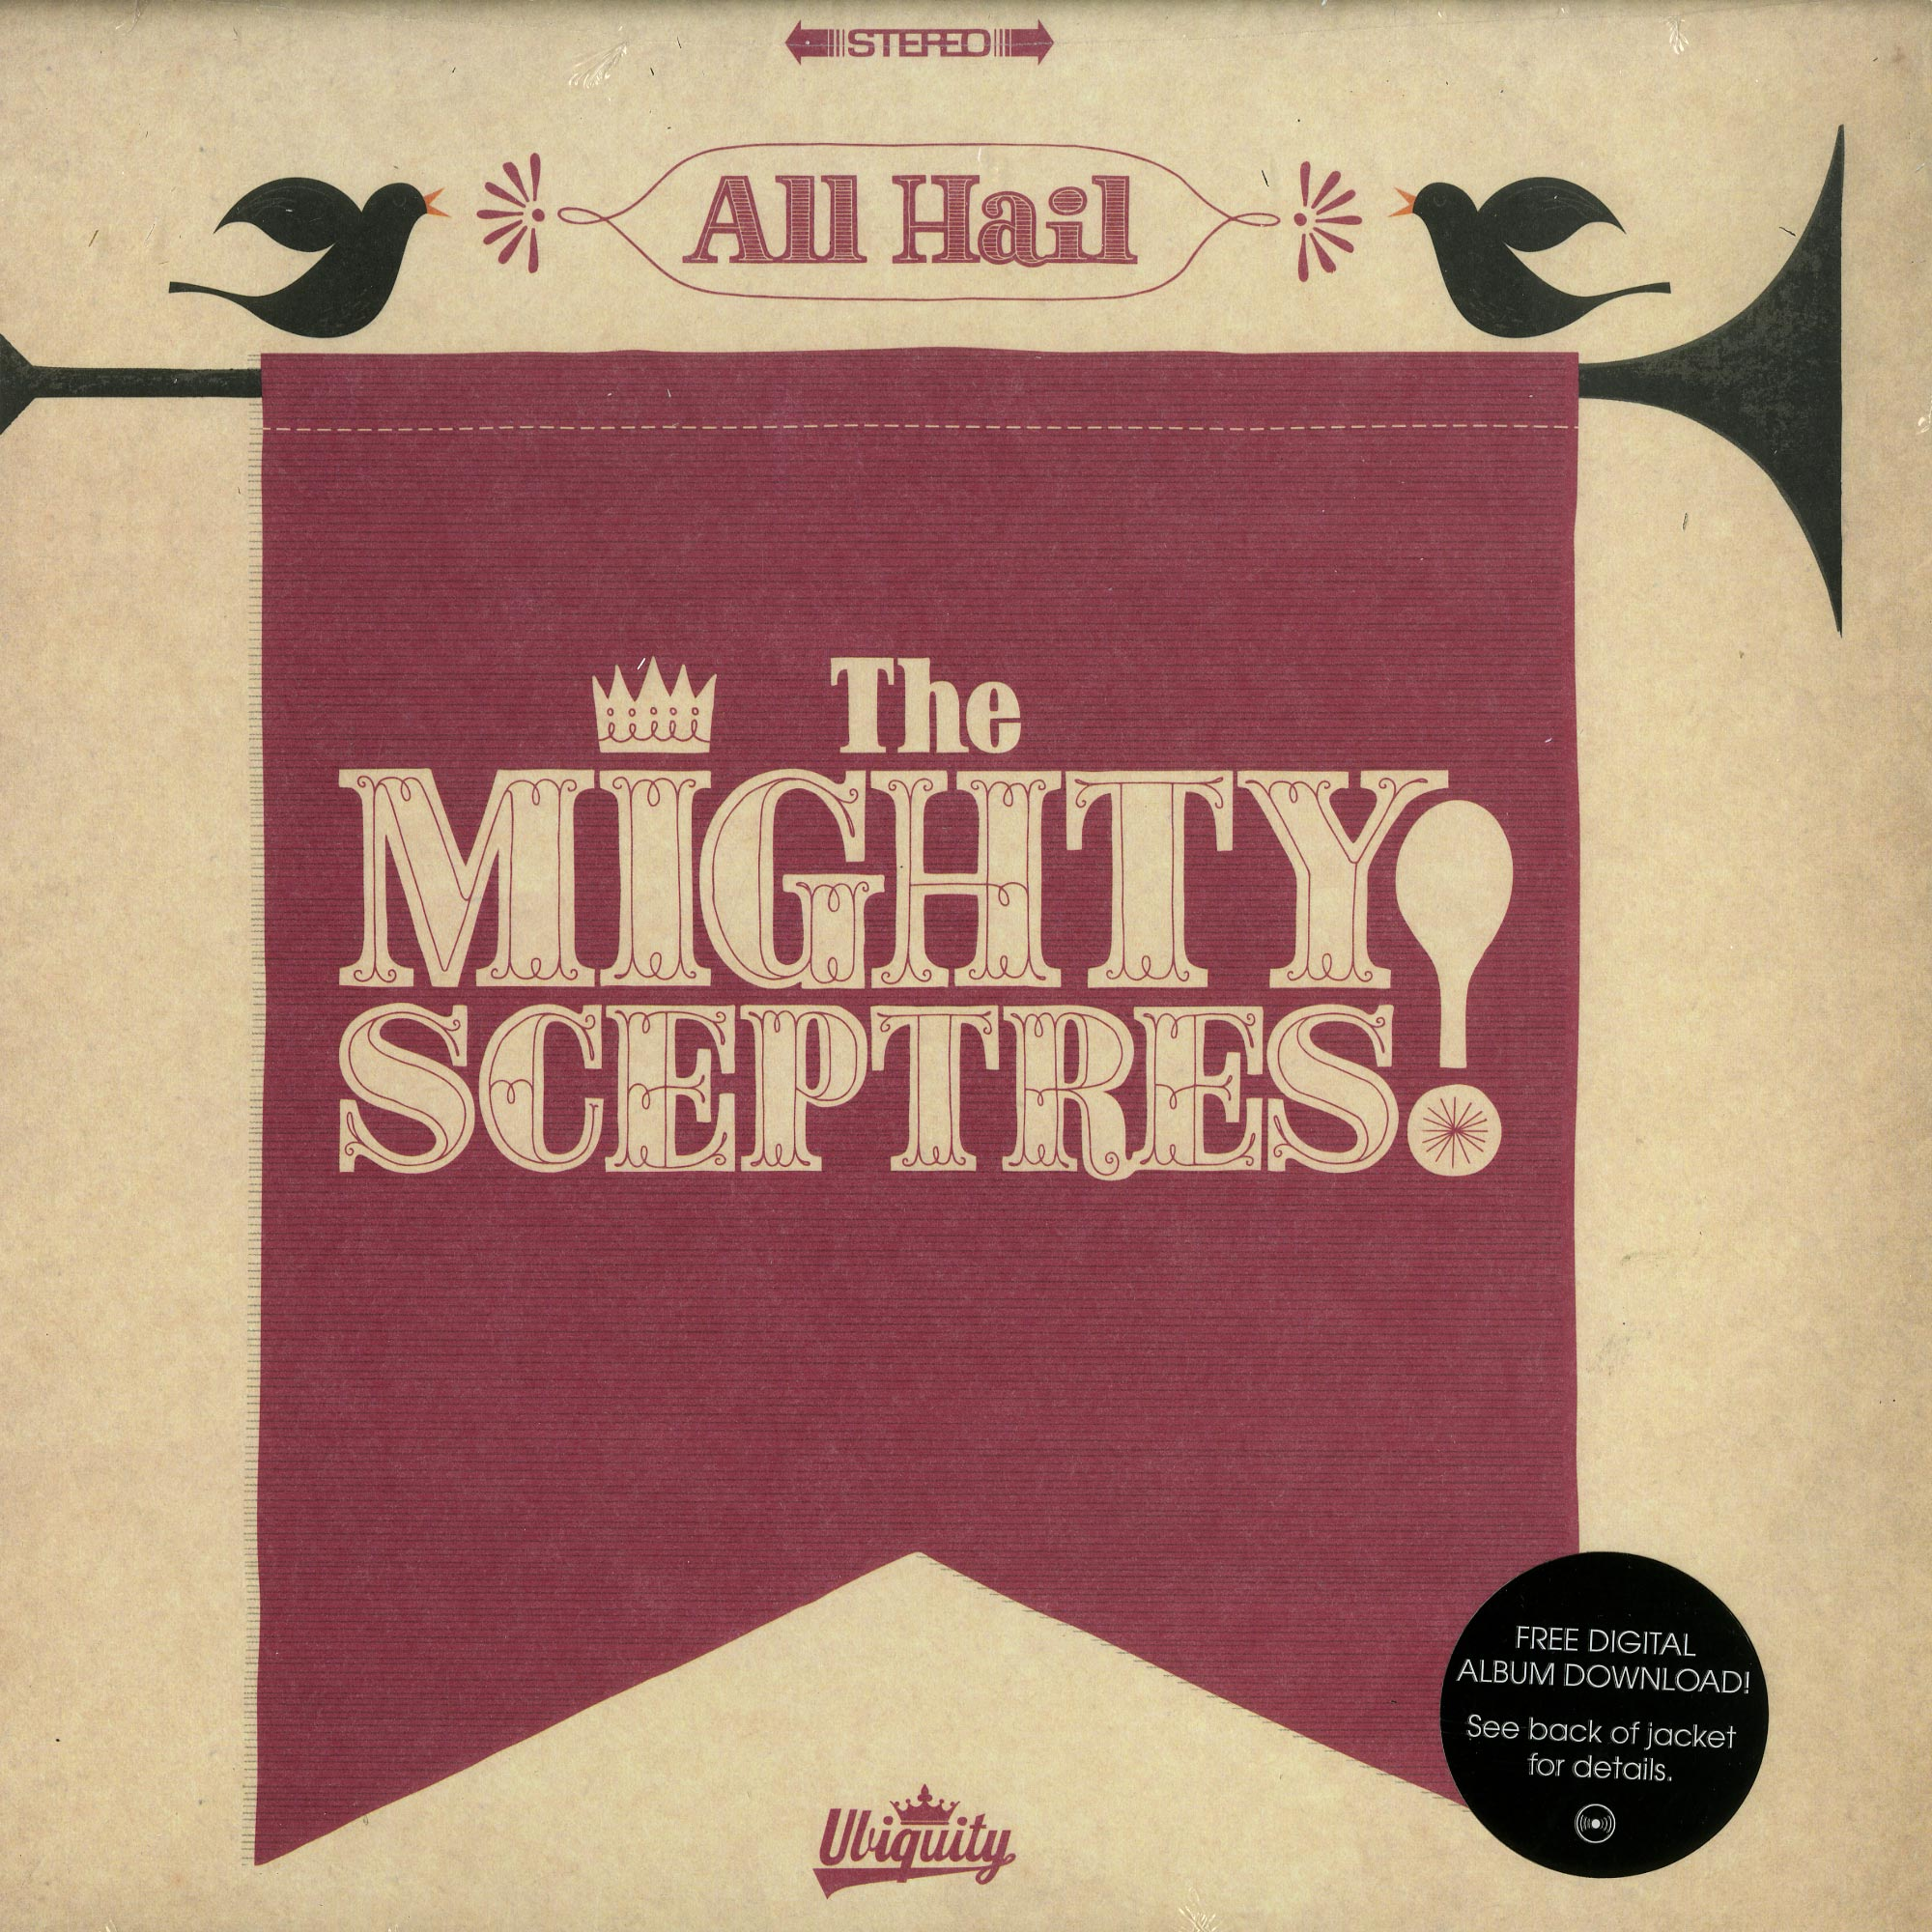 The Mighty Sceptres - ALL HAIL THE MIGHTY SCEPTRES